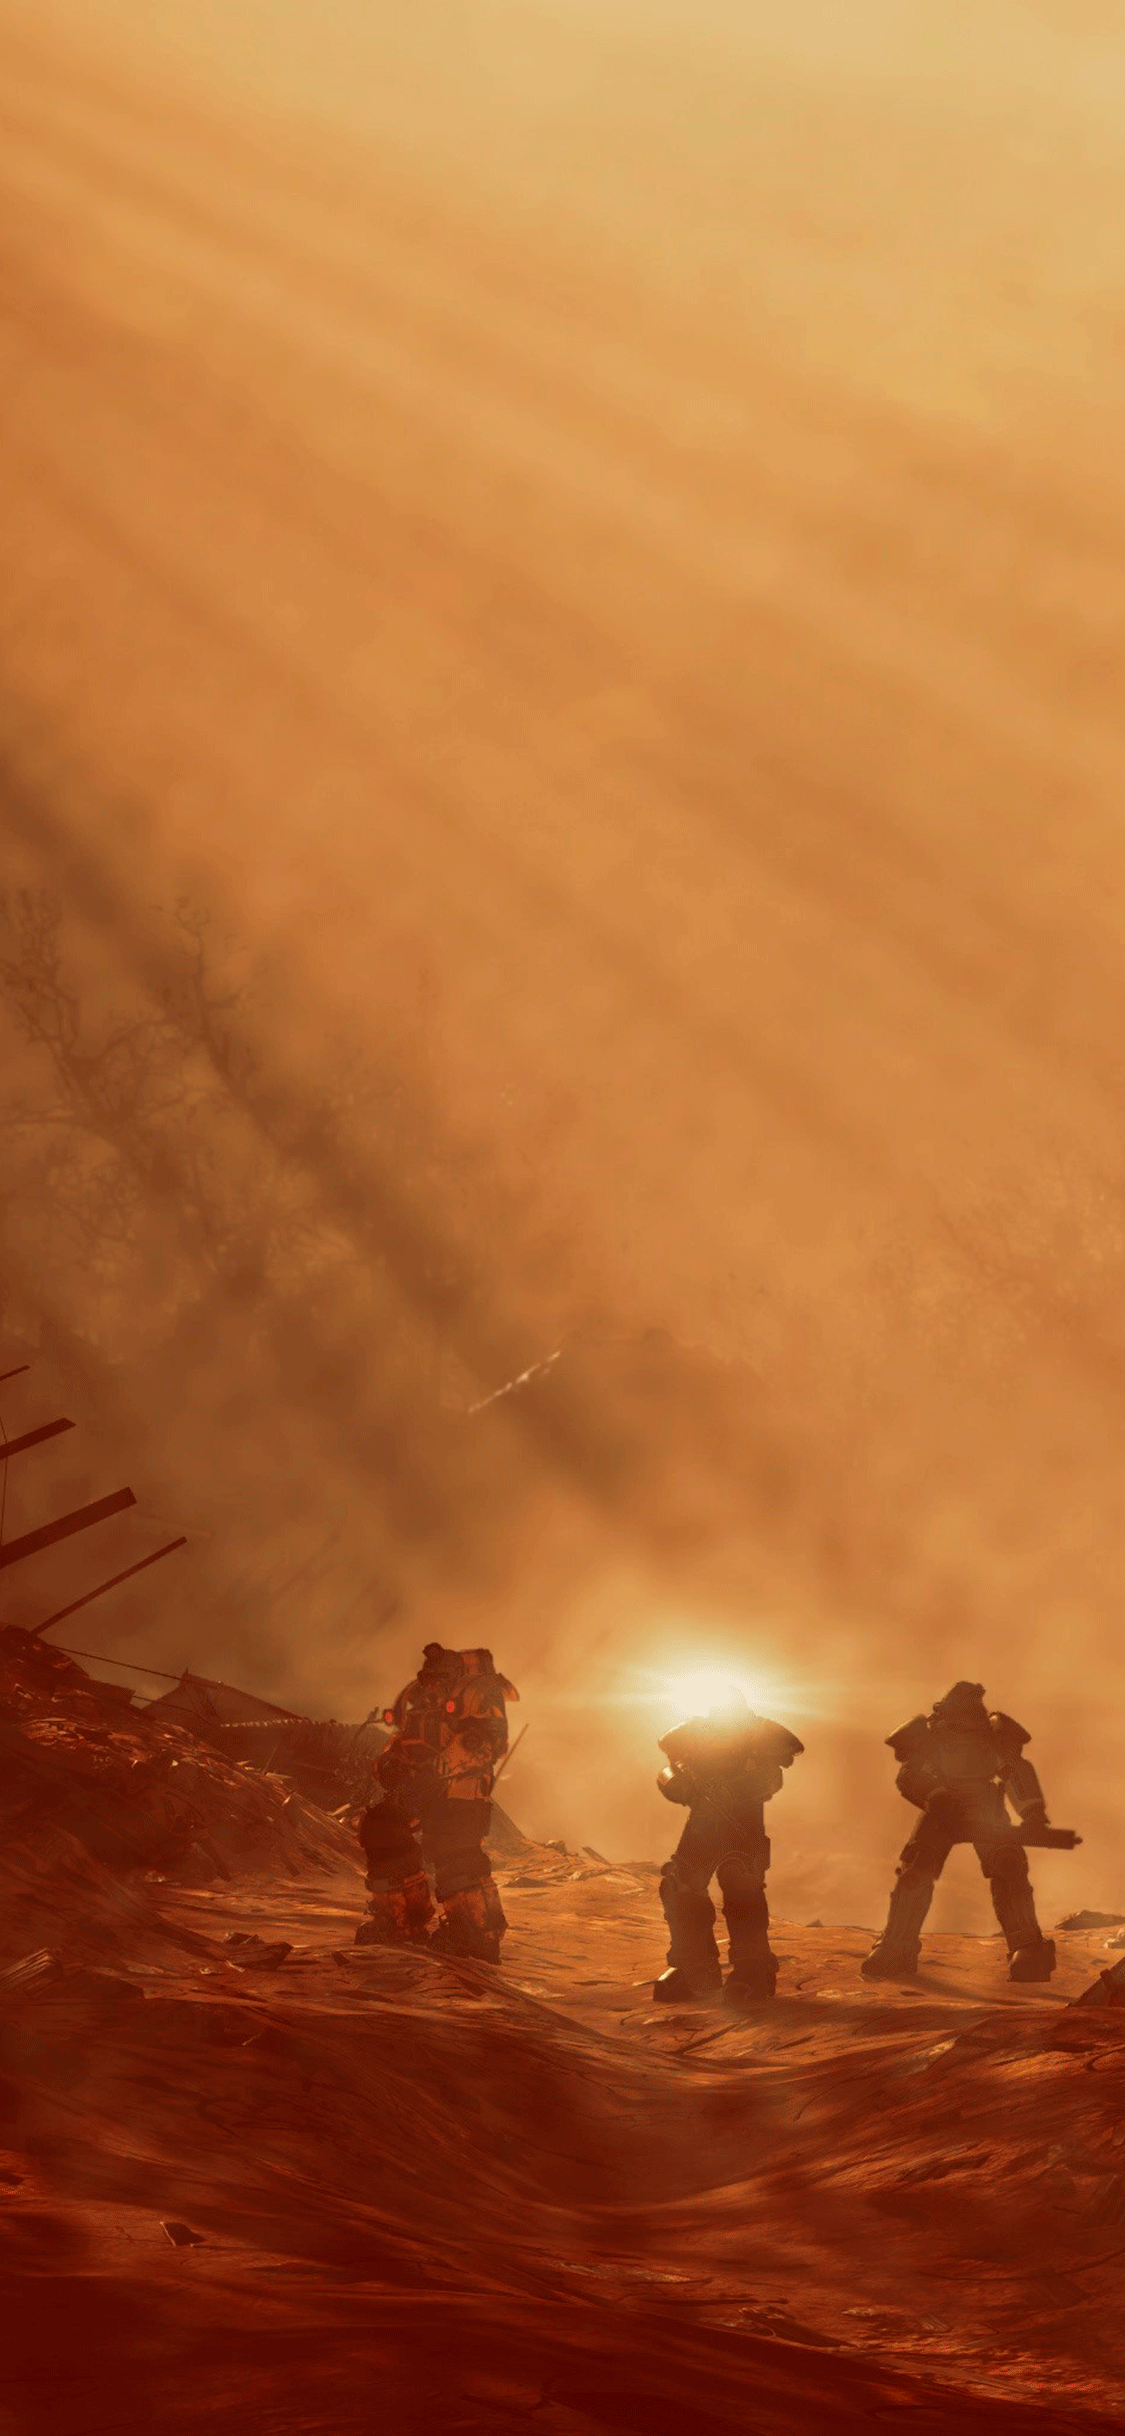 iPhone wallpaper fallout 76 2 Fallout 76